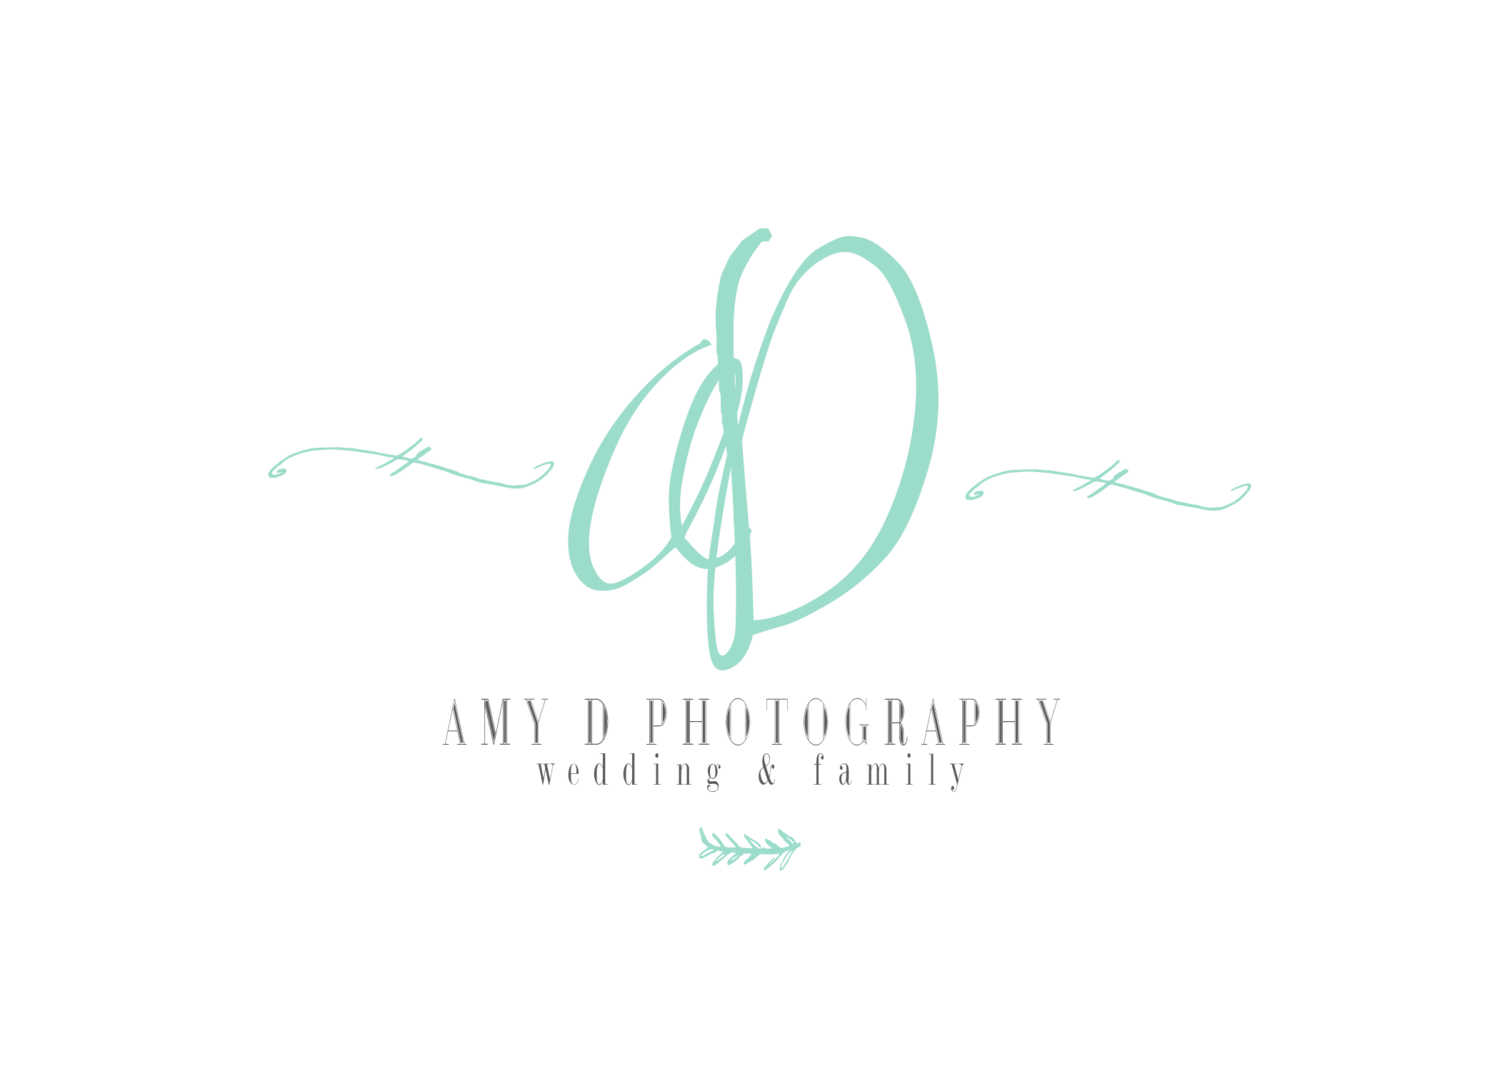 D transparent calligraphy. Barrie muskoka wedding photography